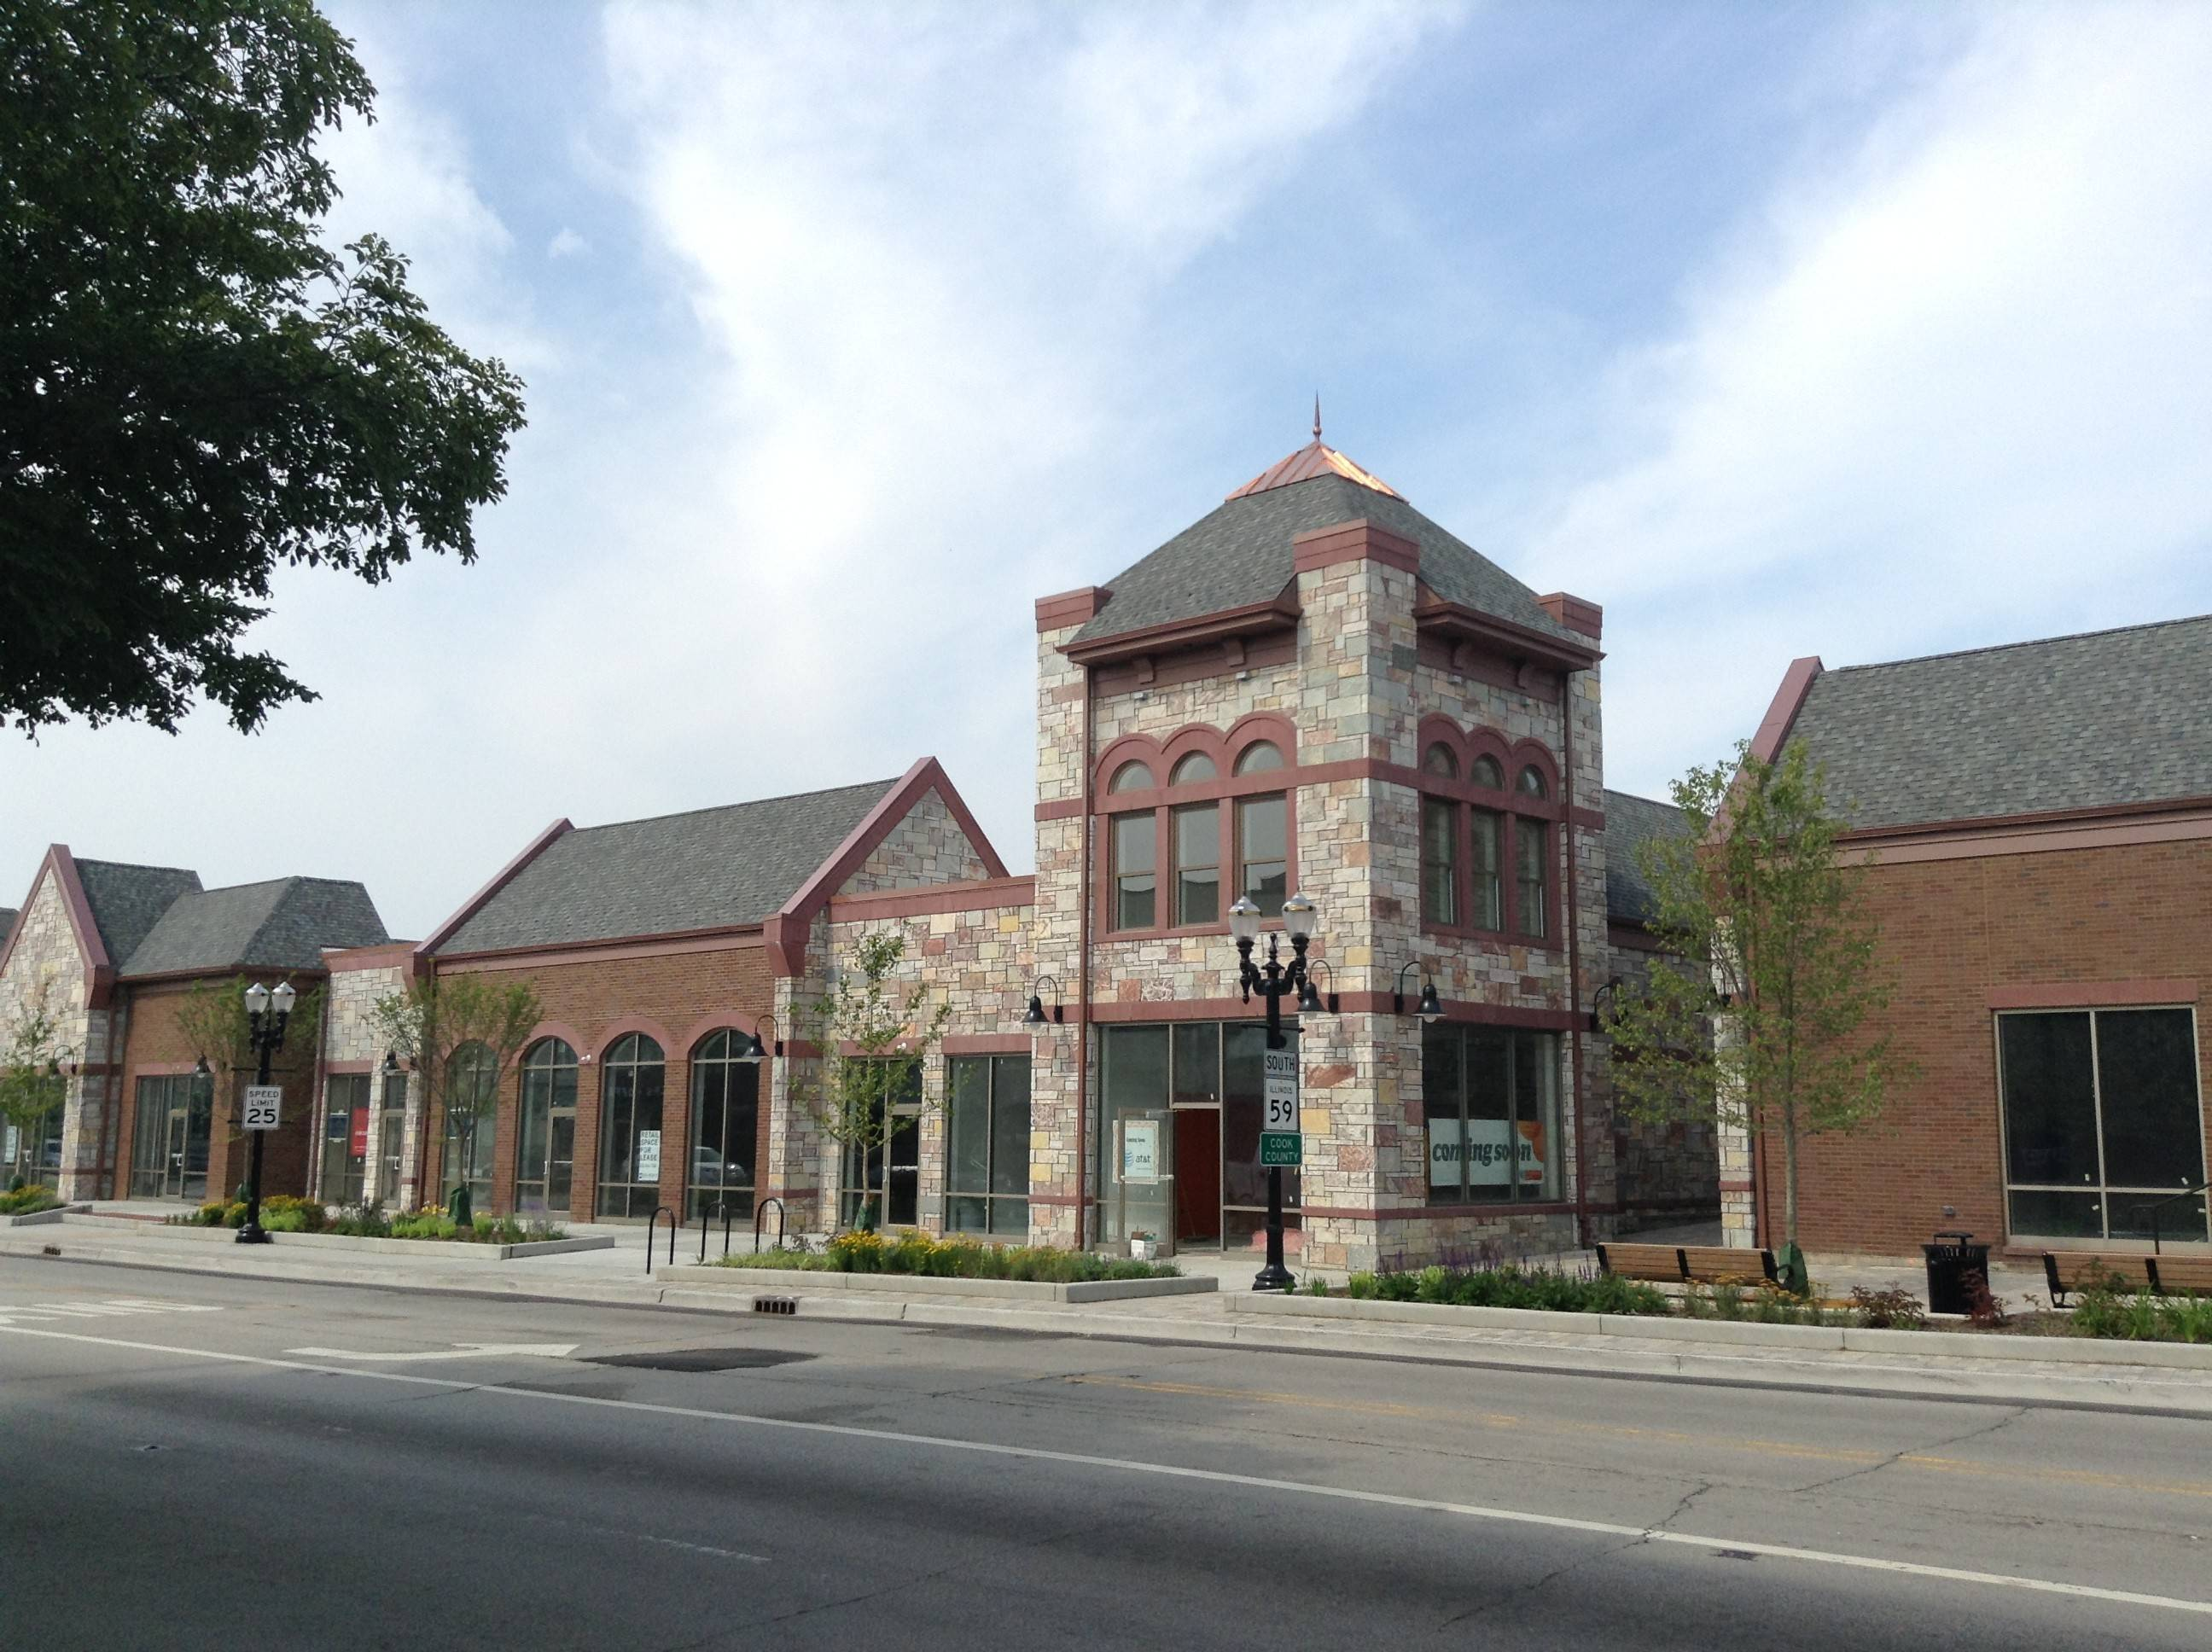 Barrington's newly completed Hough/Main redevelopment project downtown still awaits additional tenants.